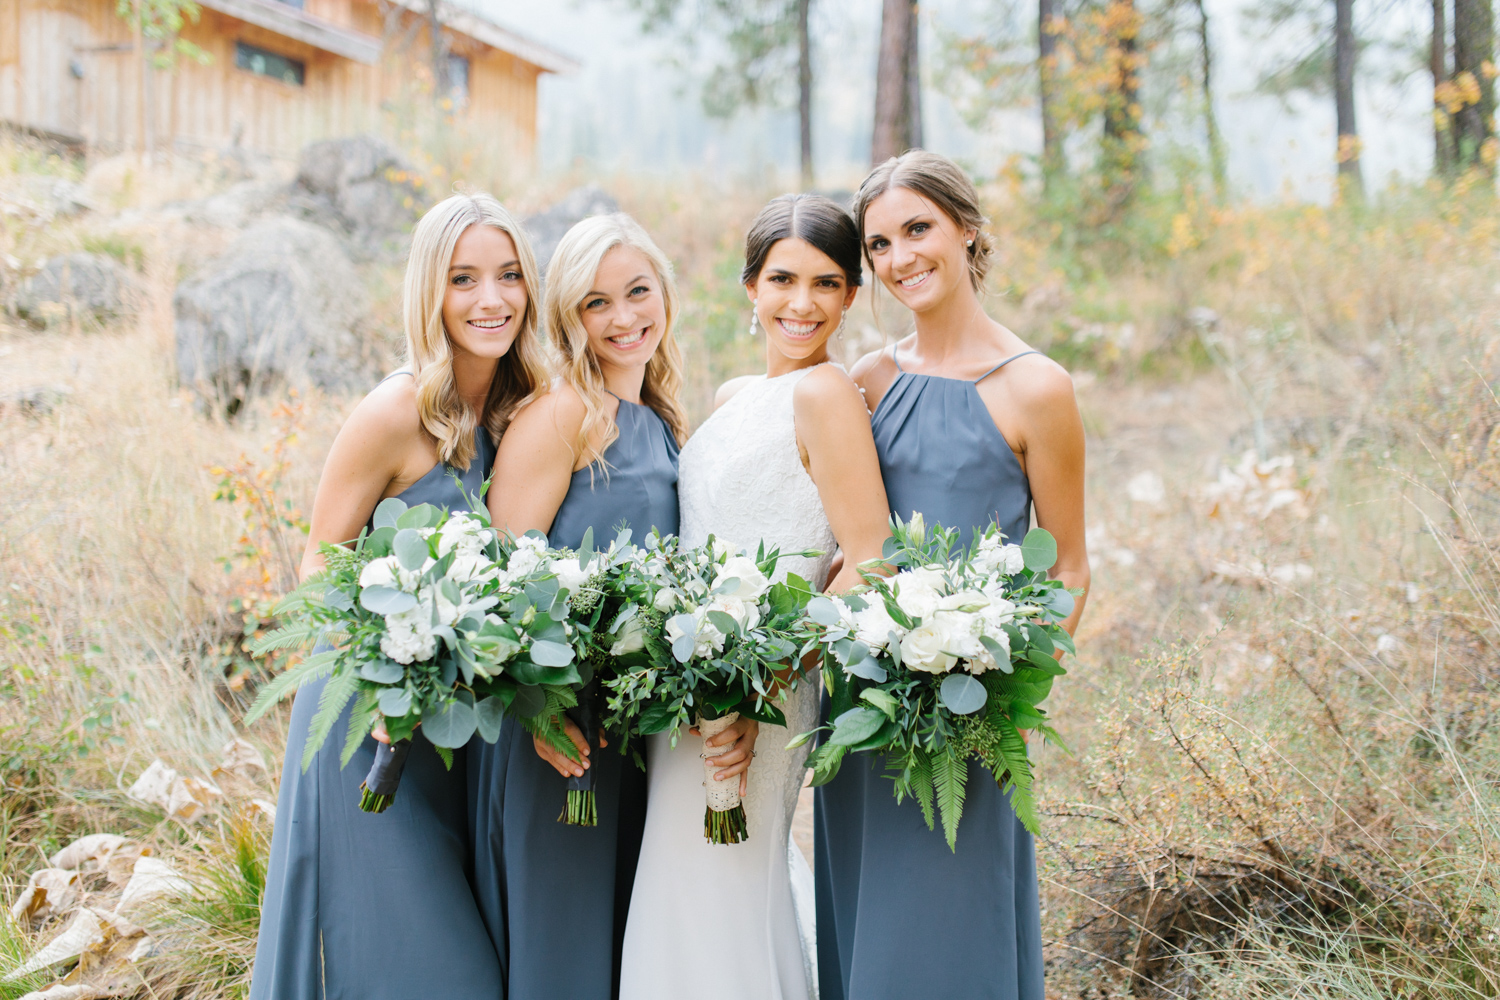 Grey and White Wedding in the Mountains of Leavenworth, Washington | Sleeping Lady | Classic and Timeless Wedding | VSCO | Bride with Bridesmaids | Grey Bridesmaids Dresses.jpg-2219.jpg